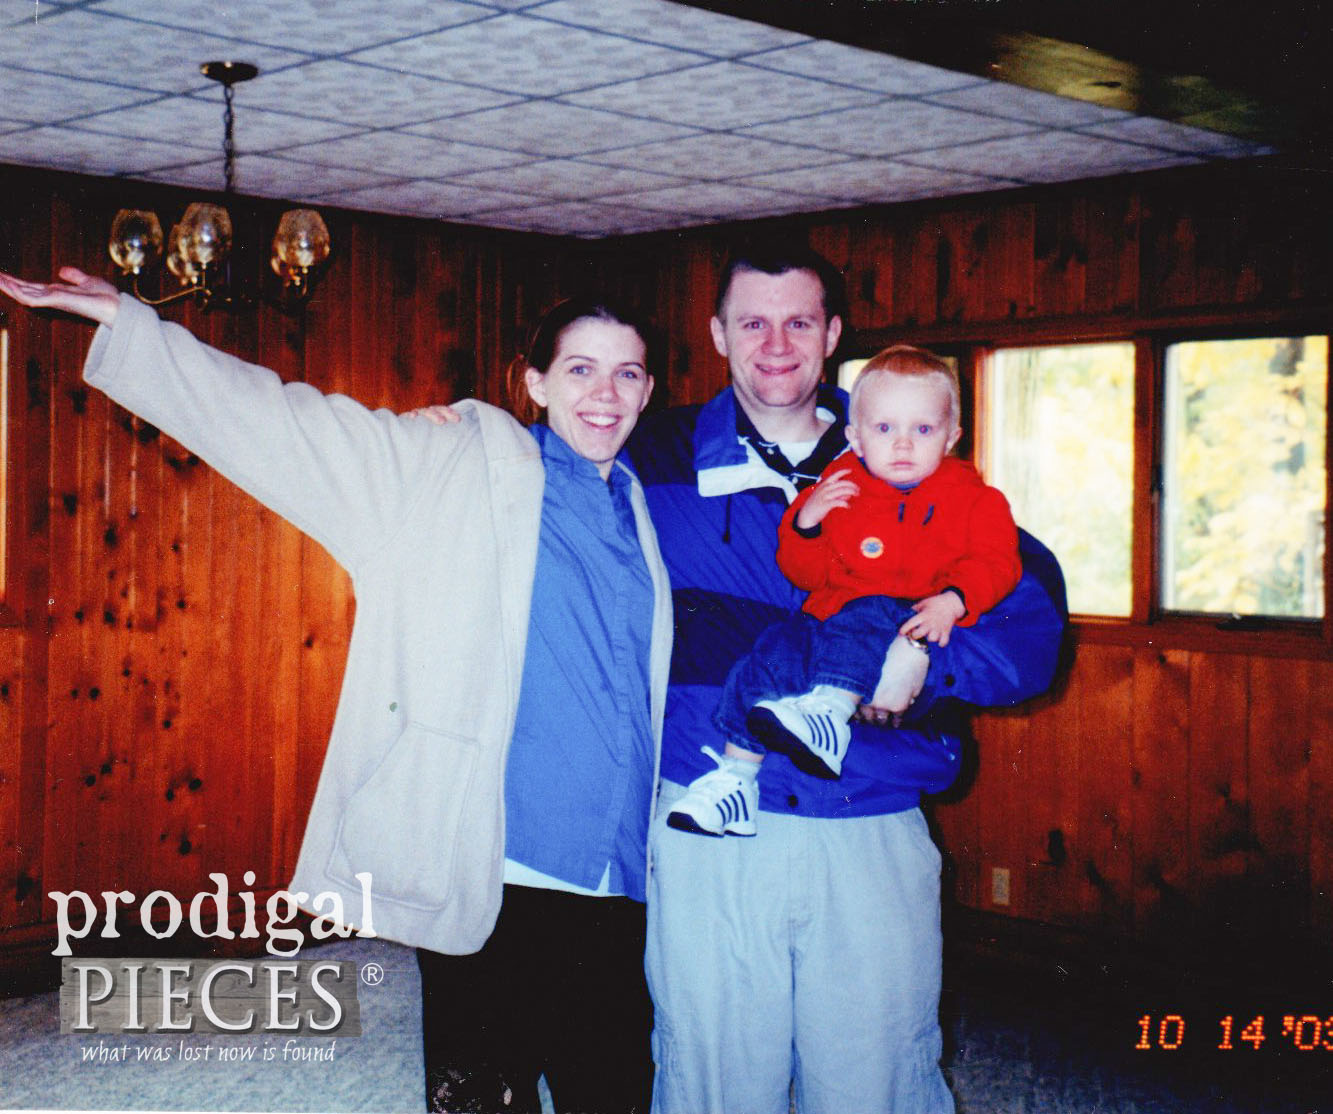 Haynes Family in First Home | prodigalpieces.com